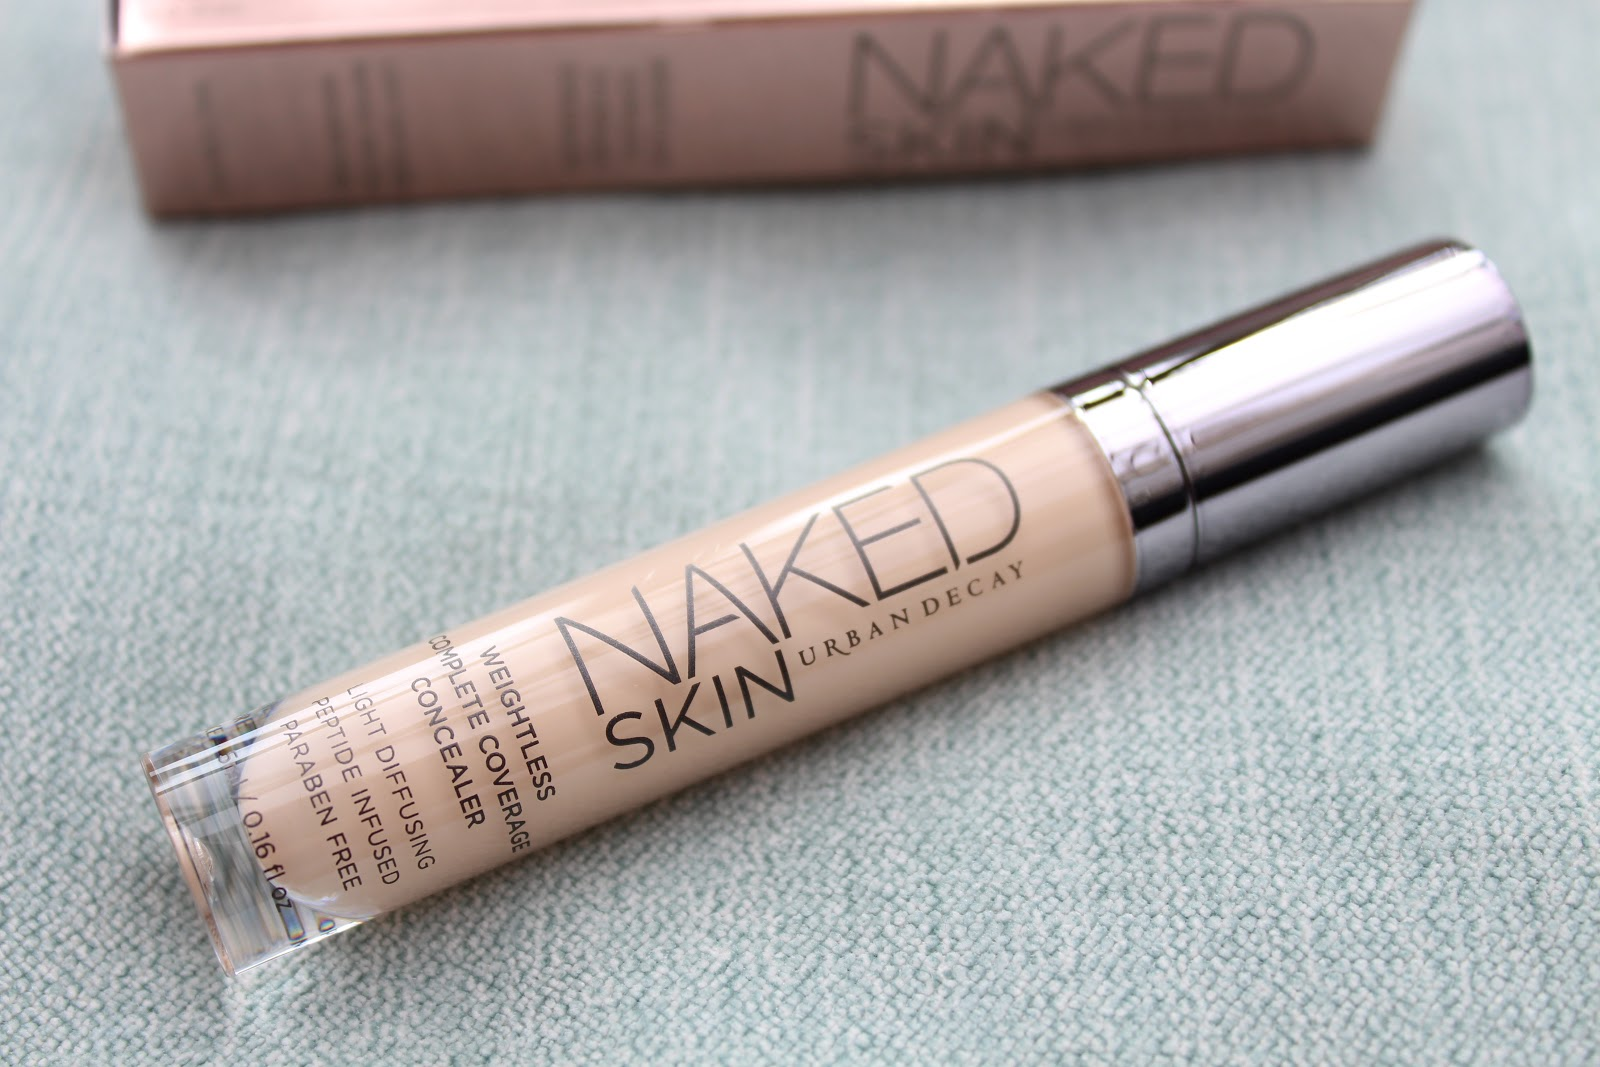 Urban Decay Naked Skin Weightless Complete Coverage Concealer Fair Neutral Review and Swatches